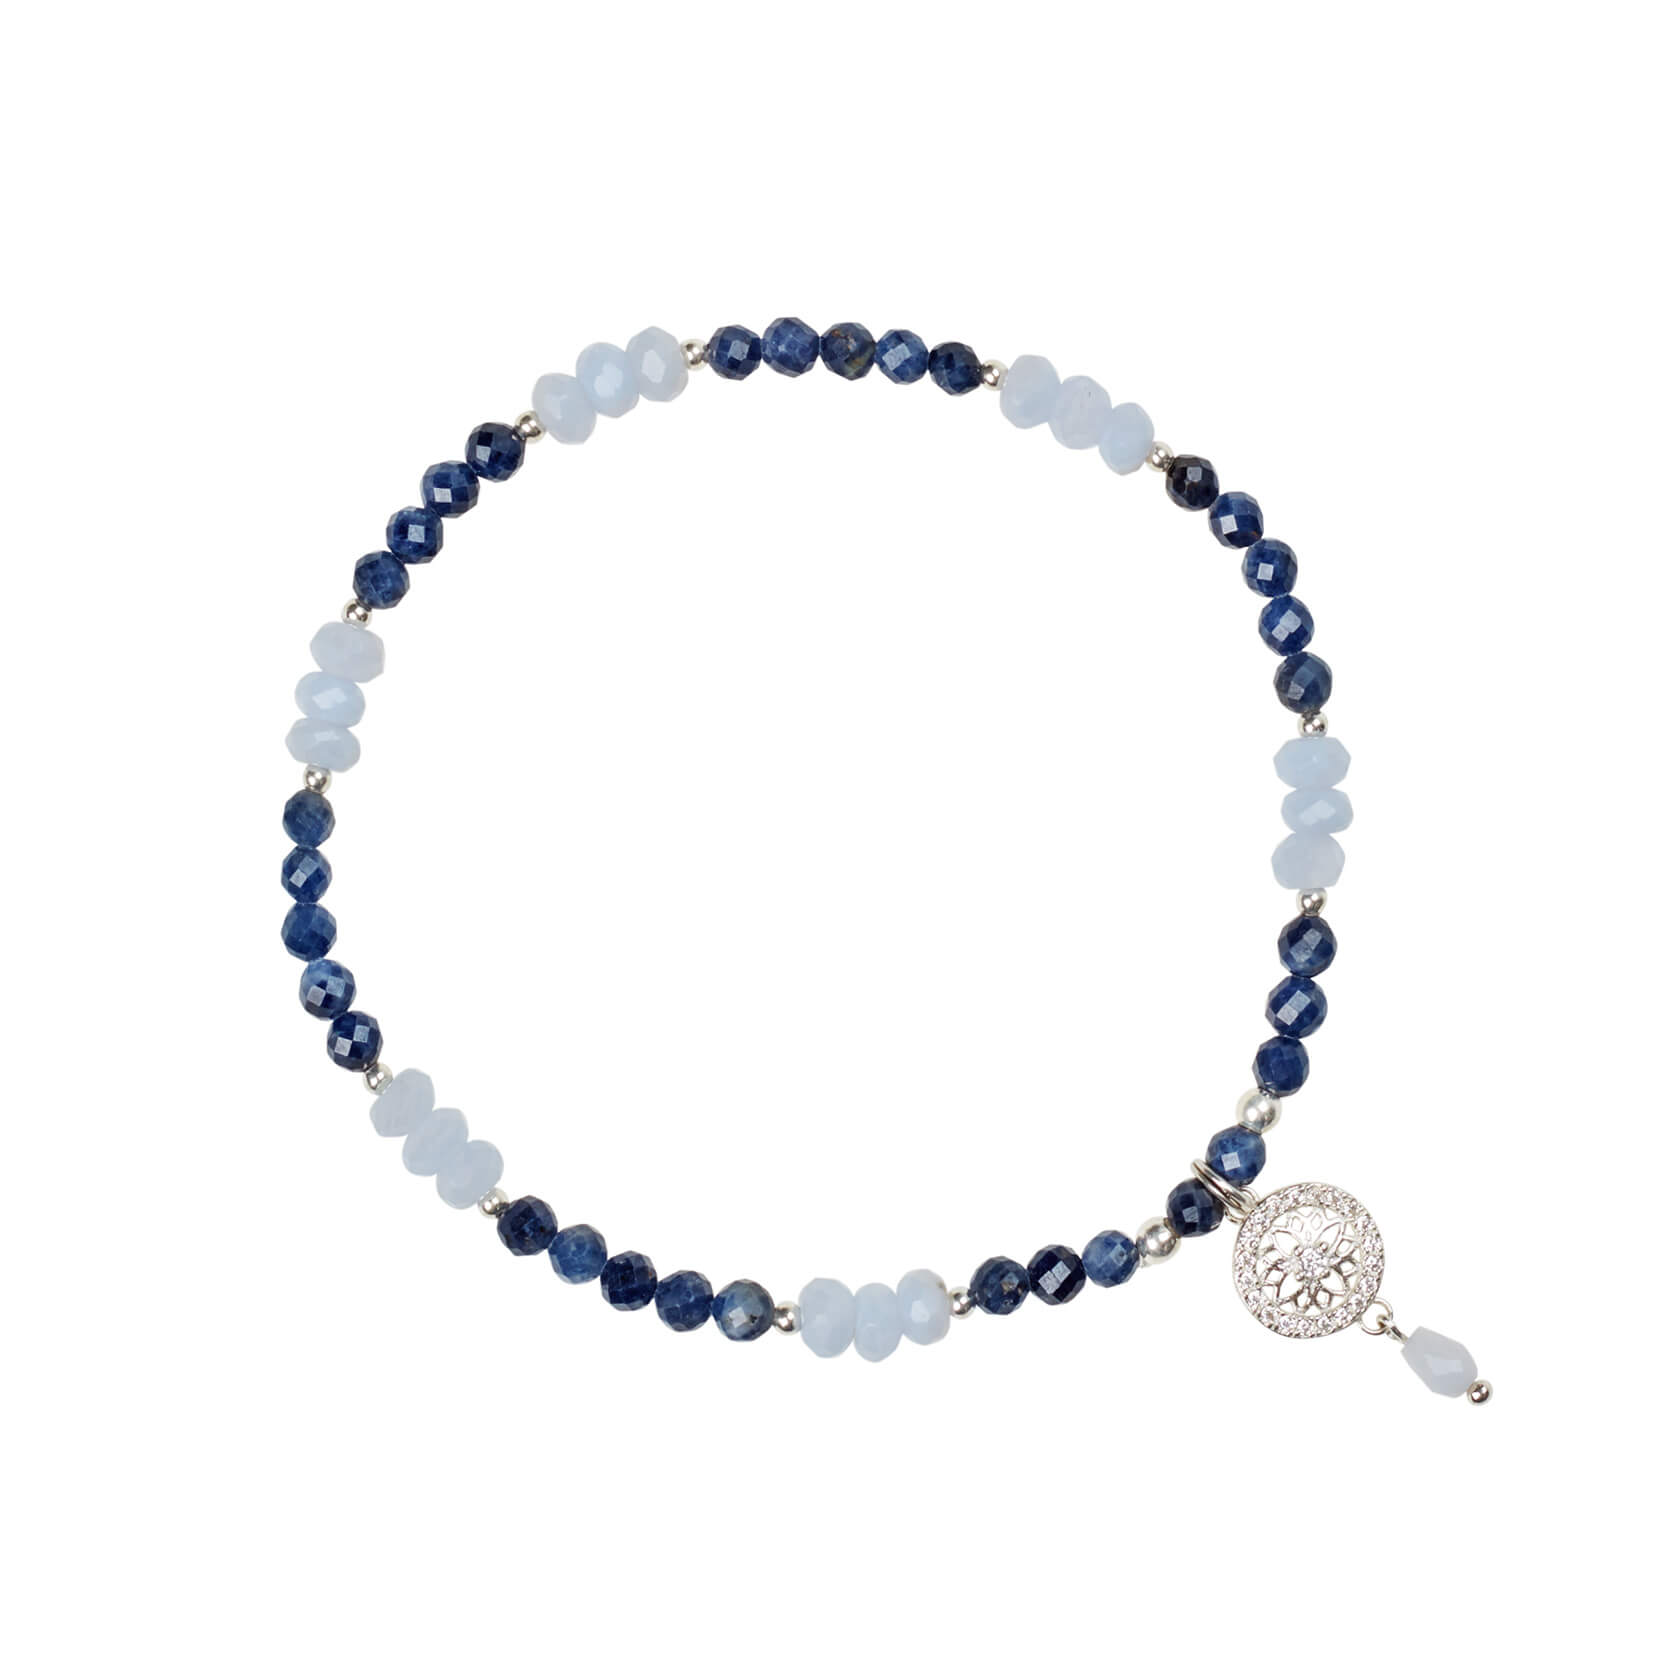 Sapphire and Chalcedony Bracelet